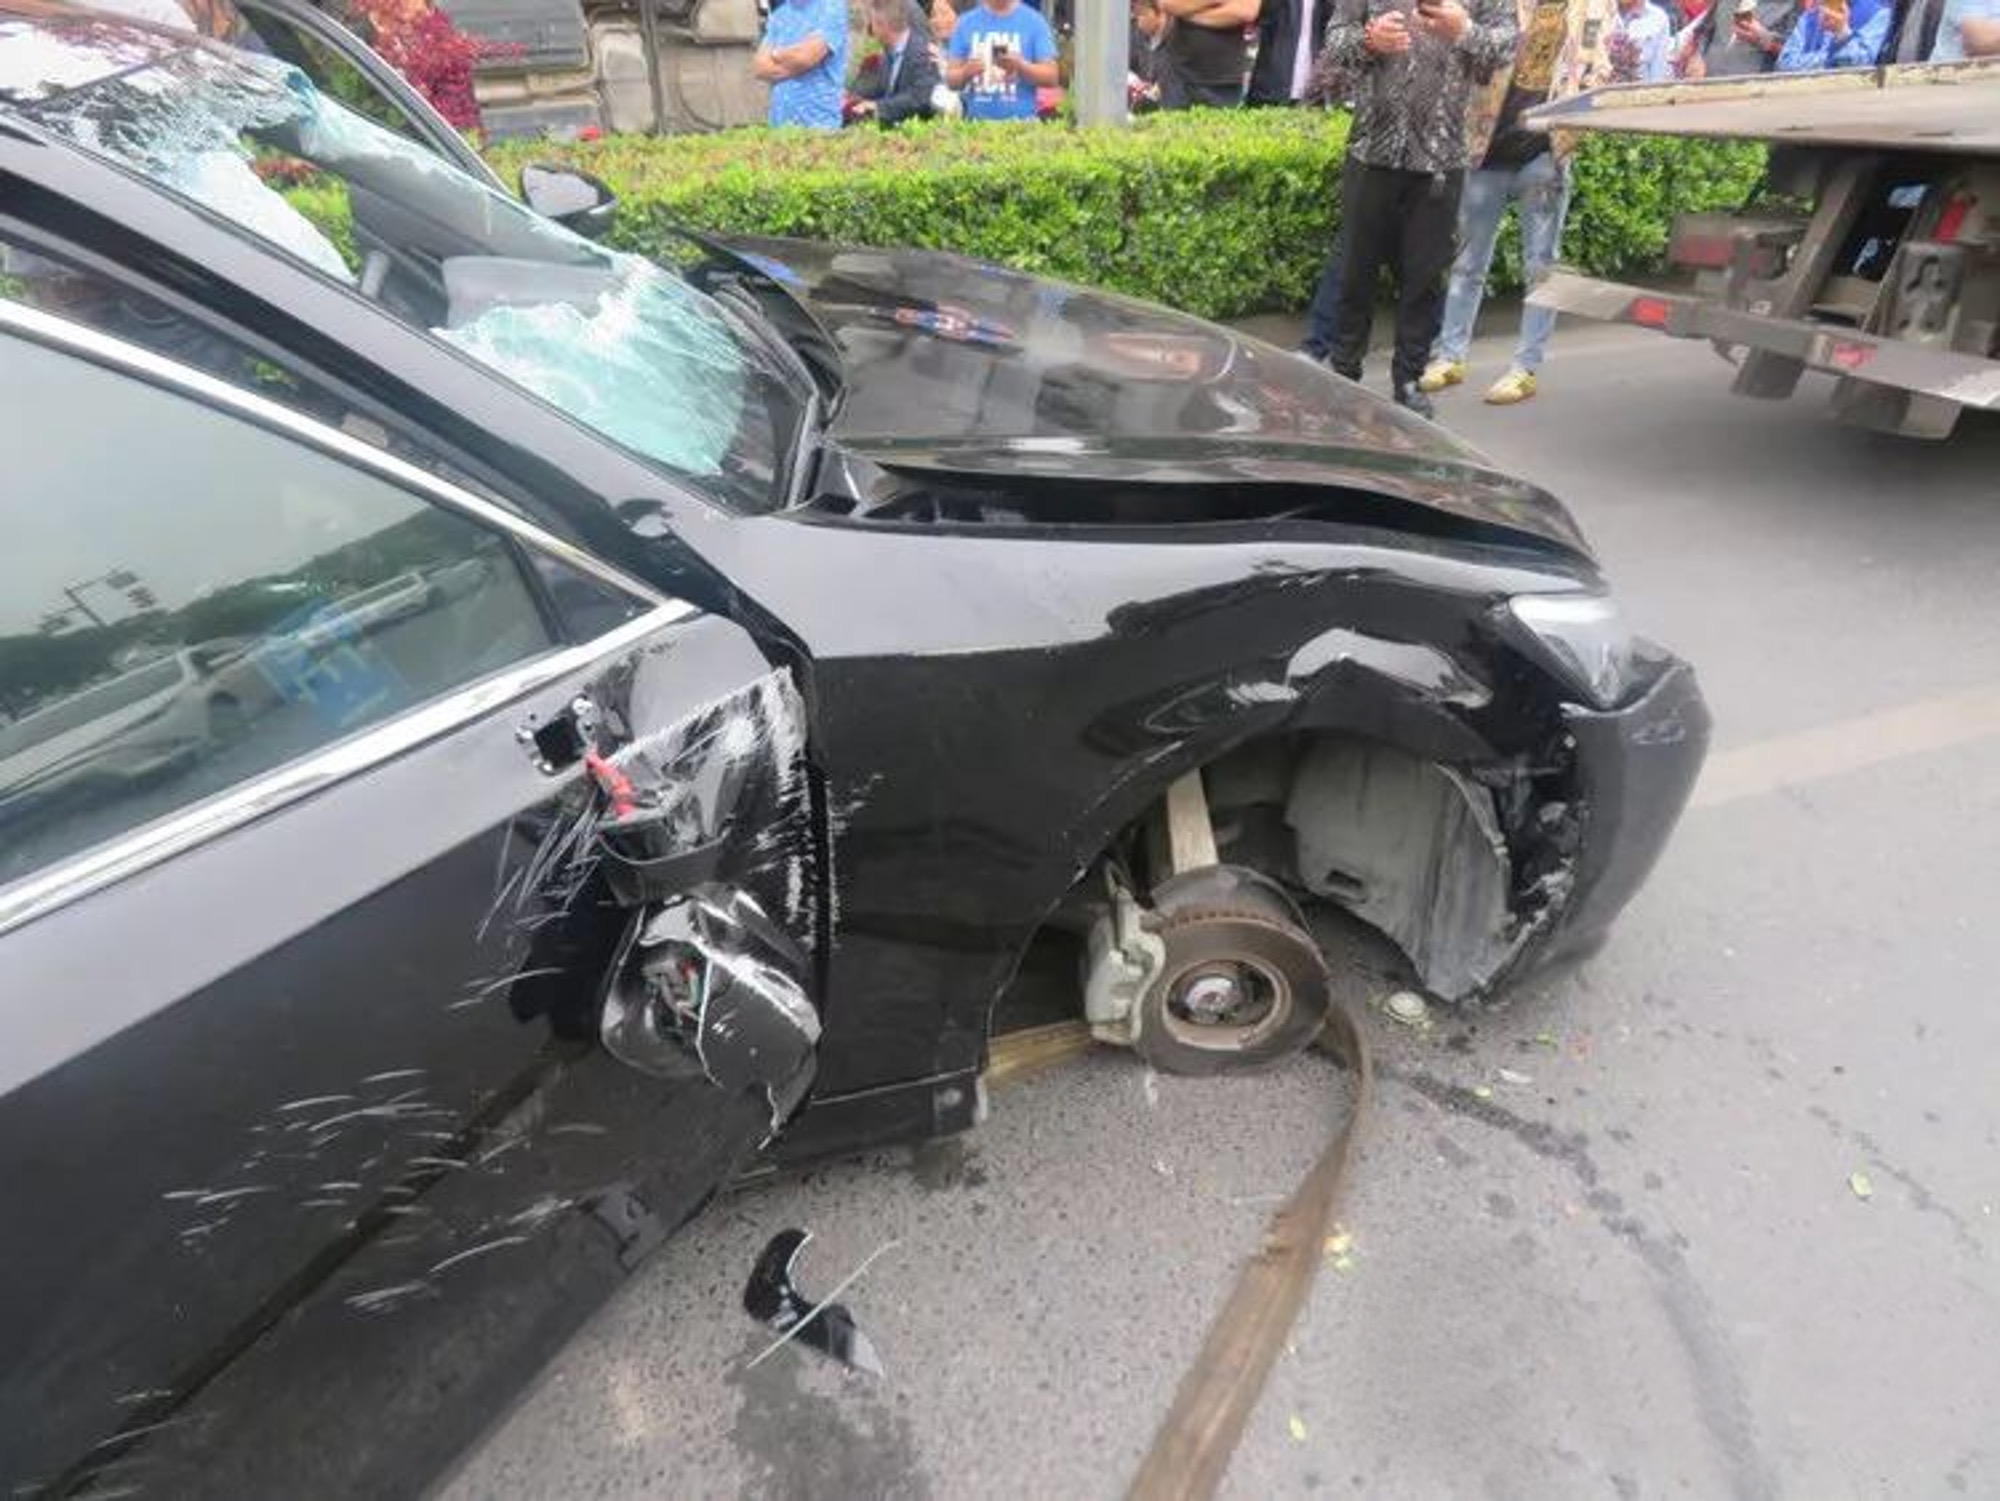 The black Toyota was sent careering off the road and over a traffic island. Credit: AsiaWire